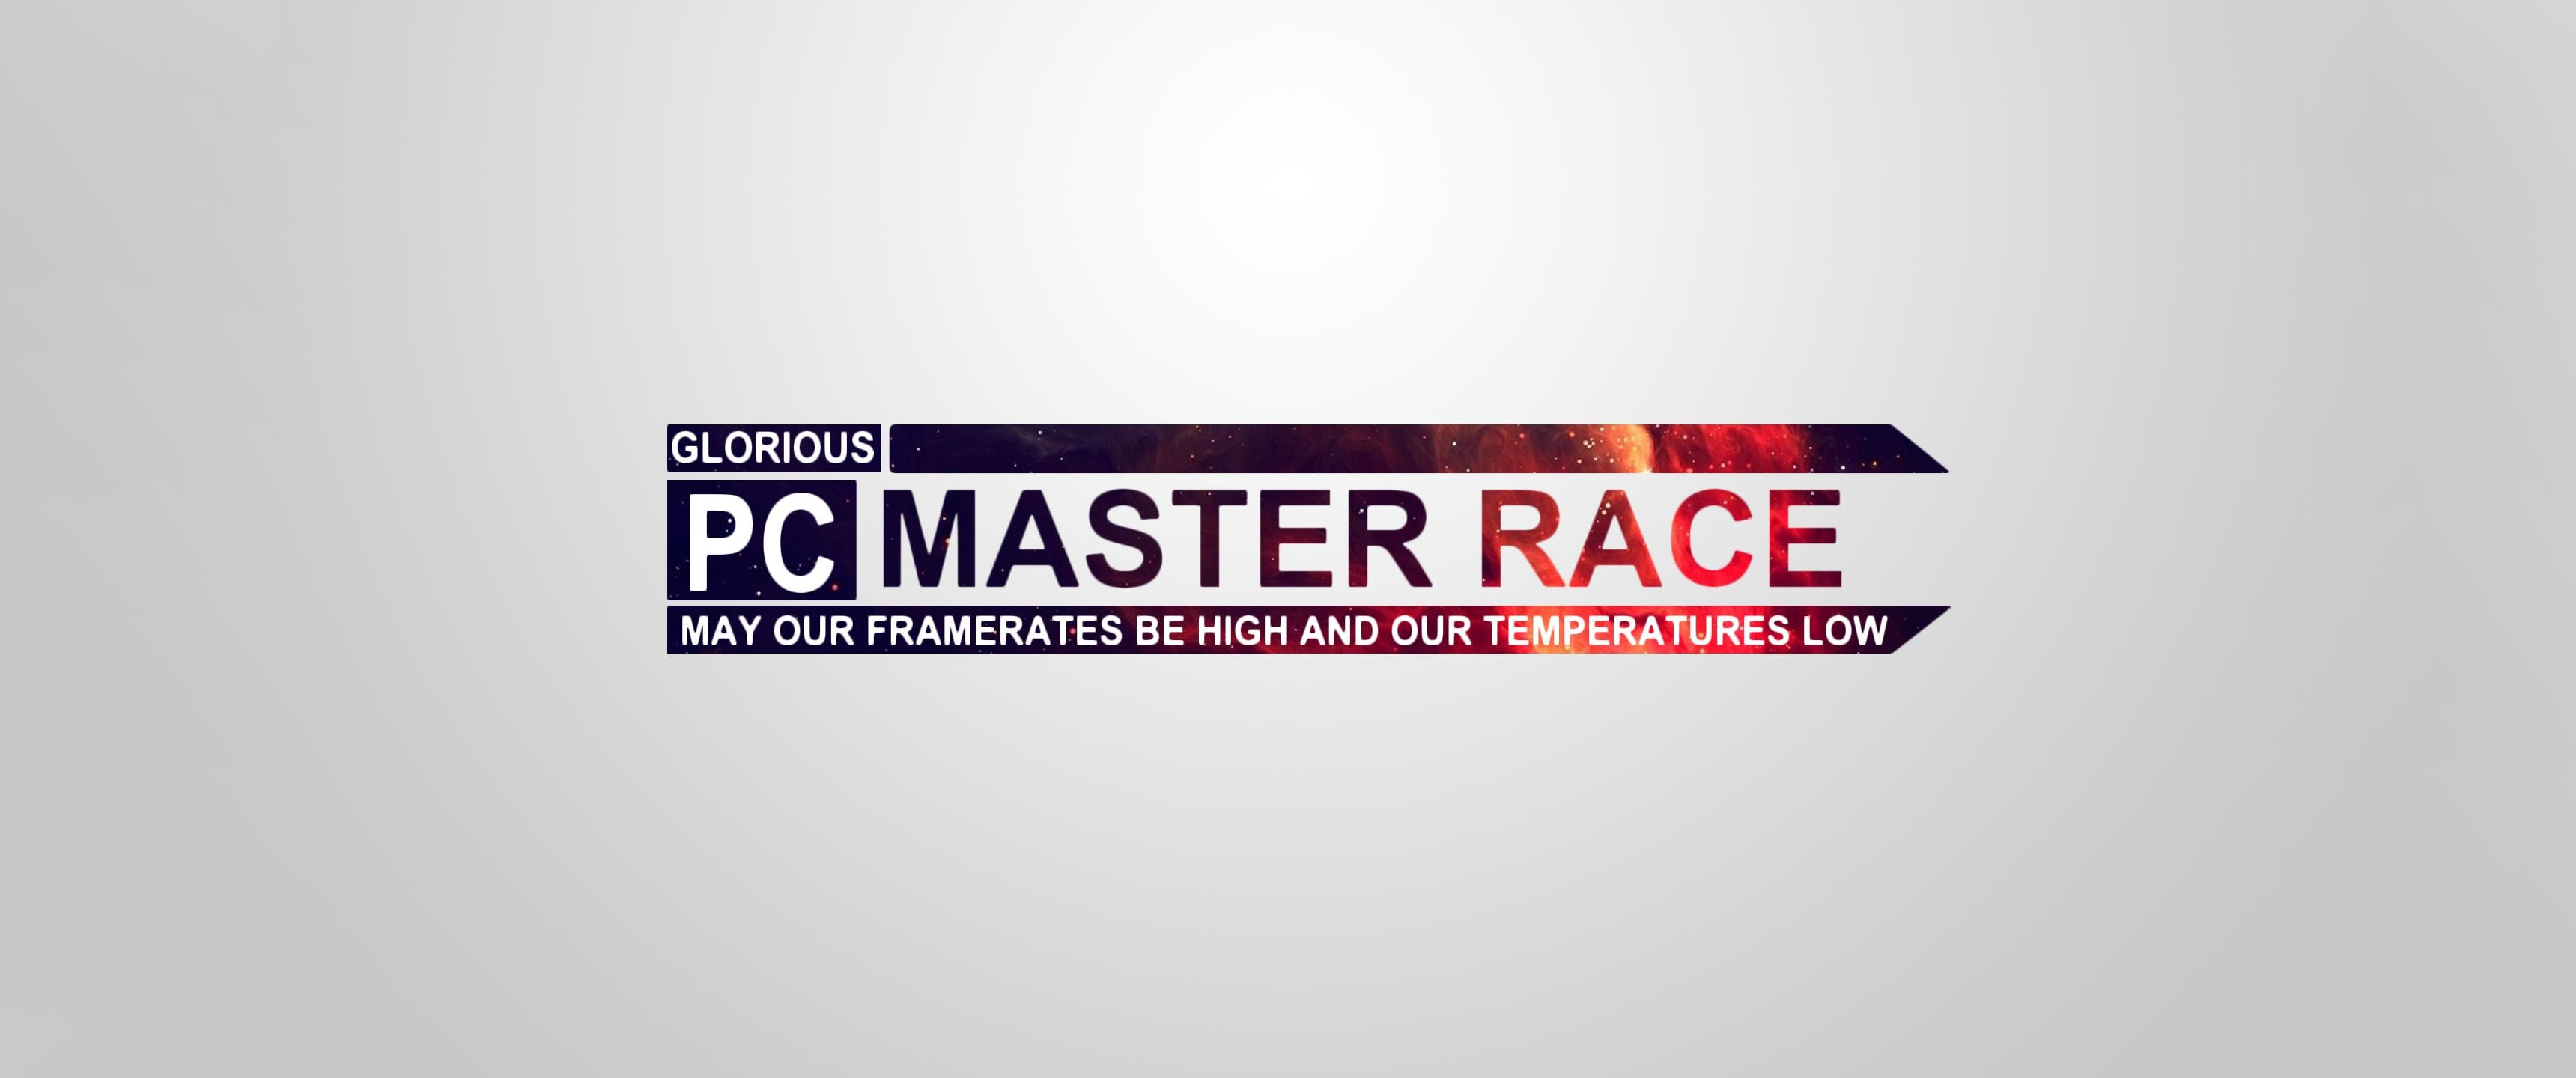 PCMasterRace wallpapers : pcmasterrace